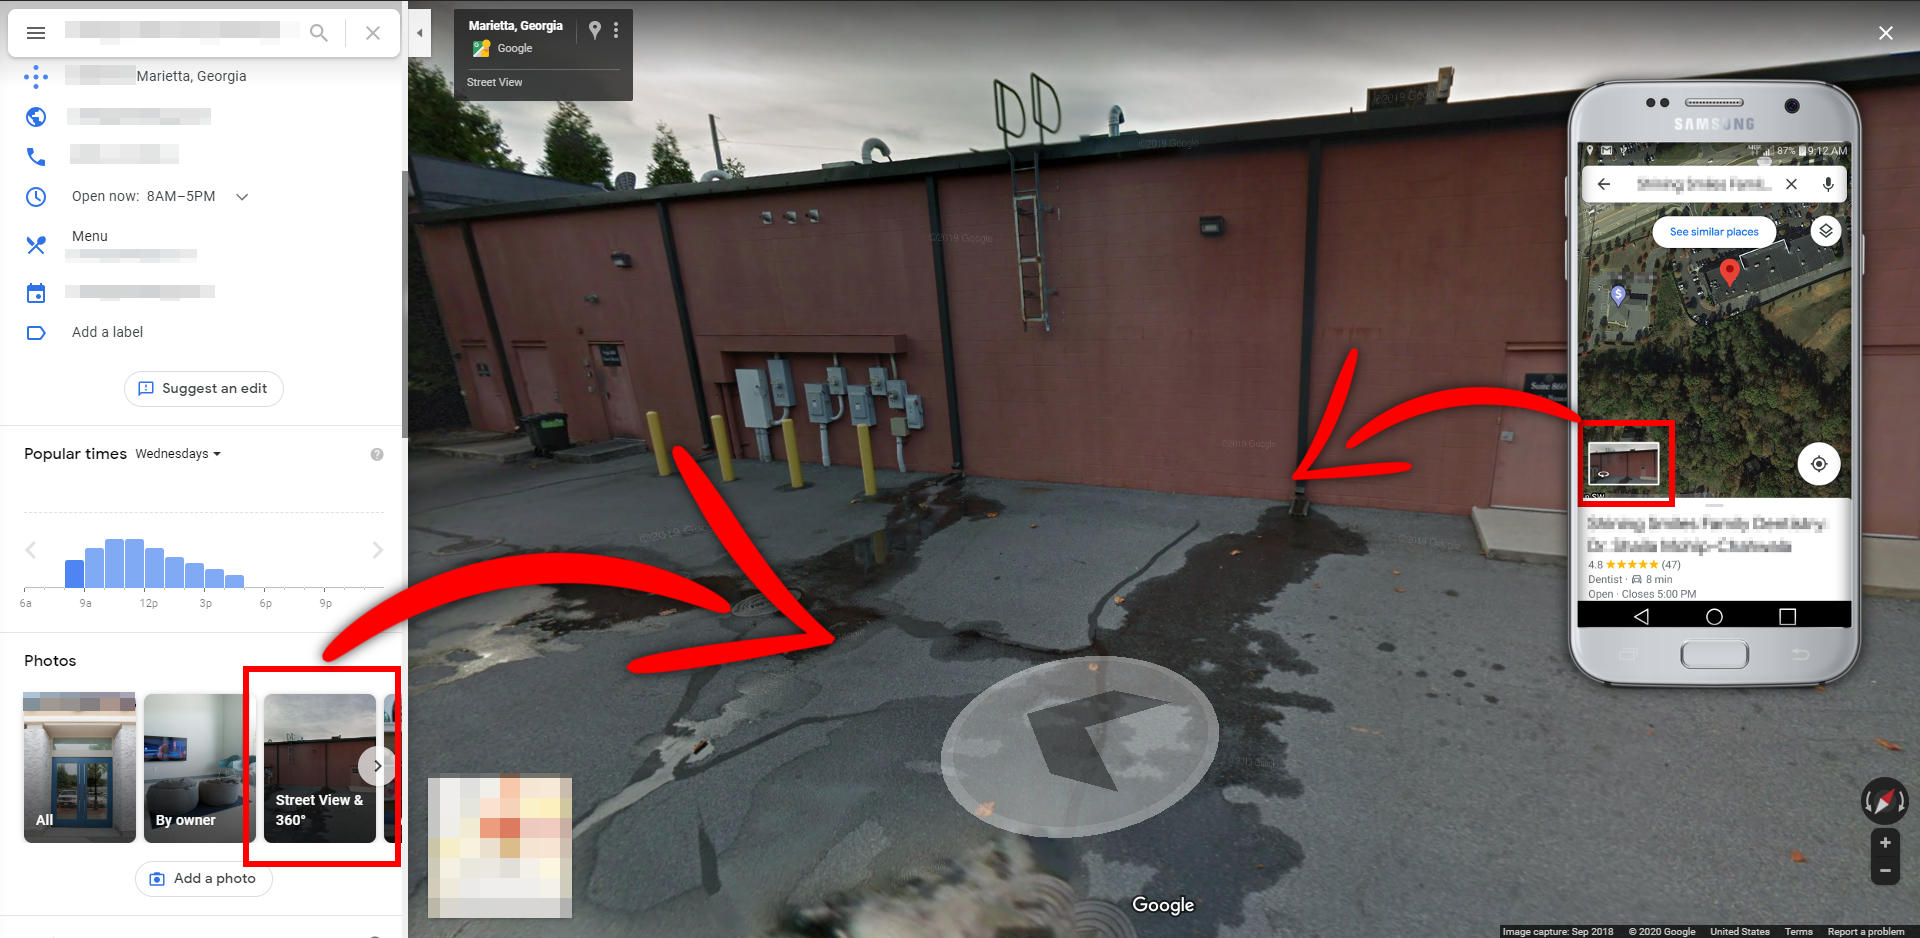 Mythos Media Virtual Tours - How To Check Your Street View - Enter Street View 1